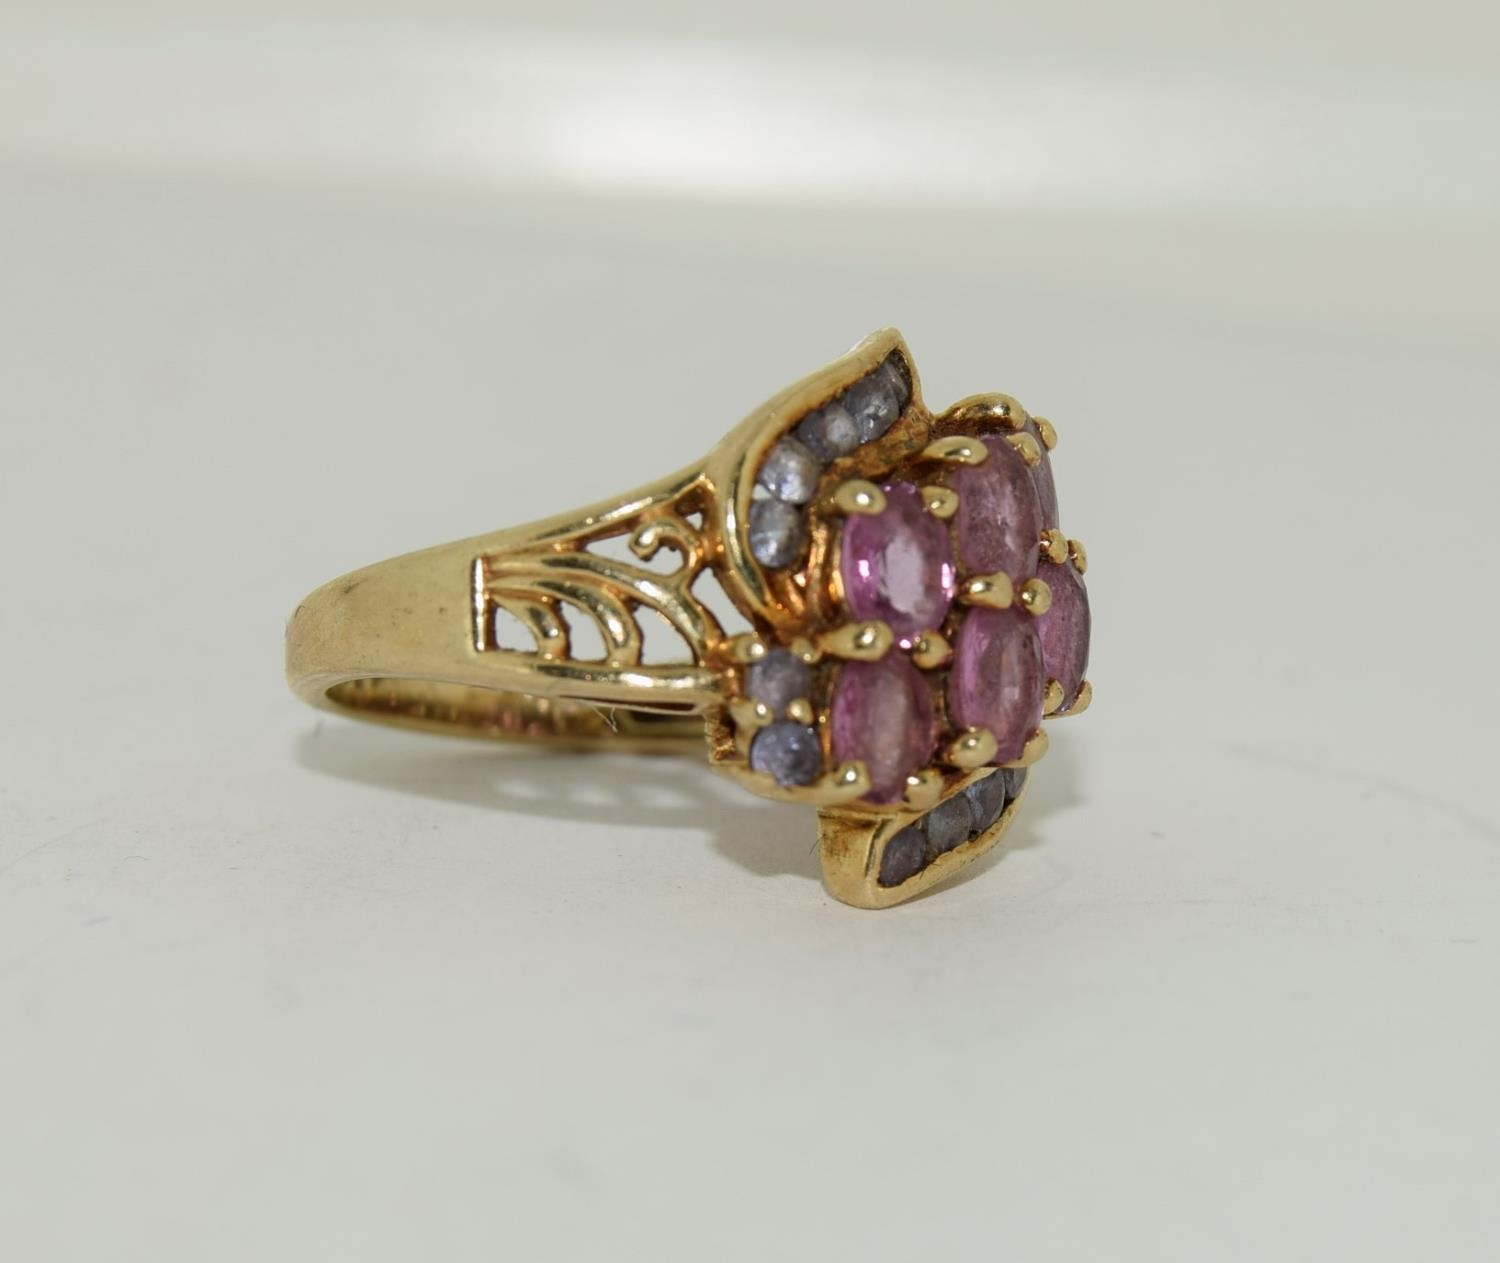 9ct gold ladies pink tourmaline and sapphire twist ring size L 4.9gm - Image 9 of 10